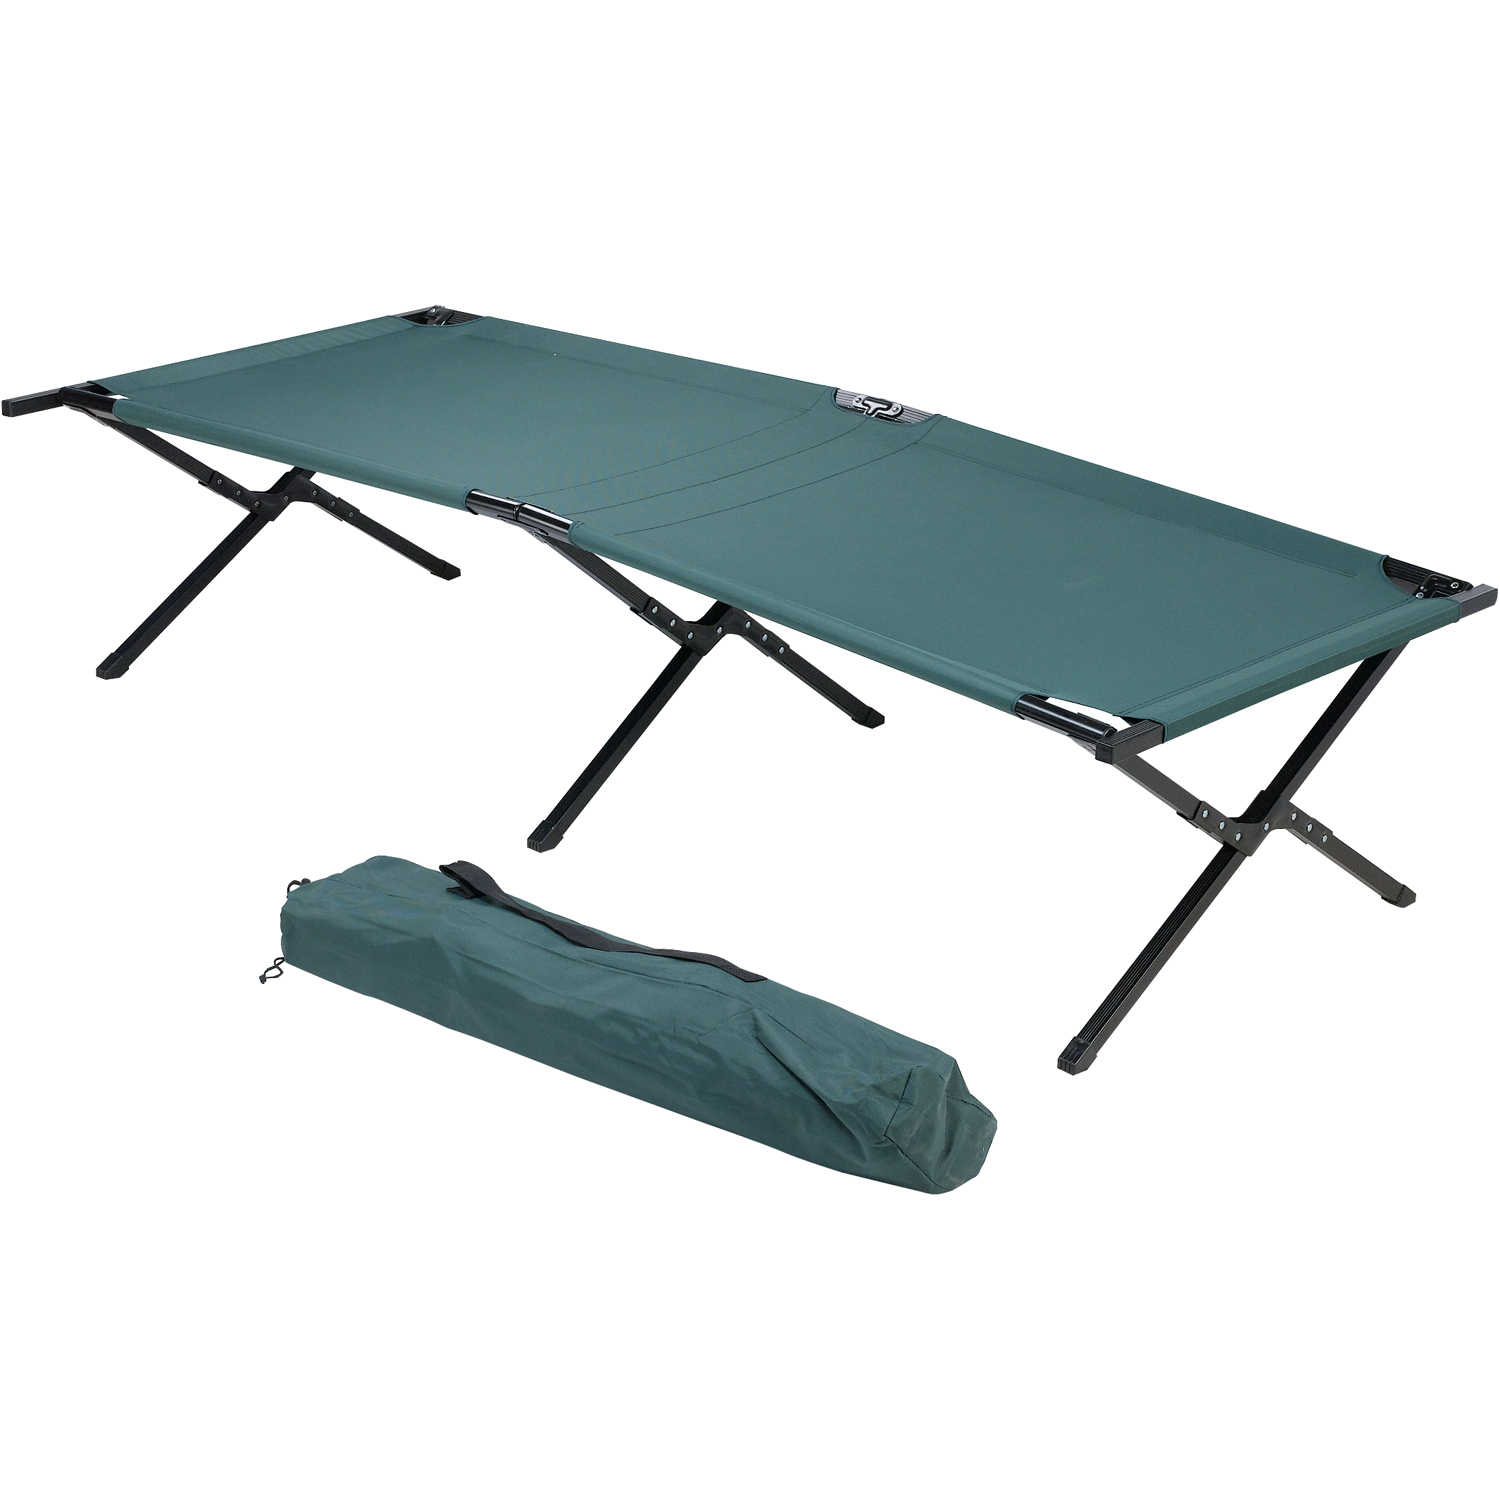 Folding Camping Camp Bed Heavy Duty 4 Steel Legs 600D Polyester Cover Green New